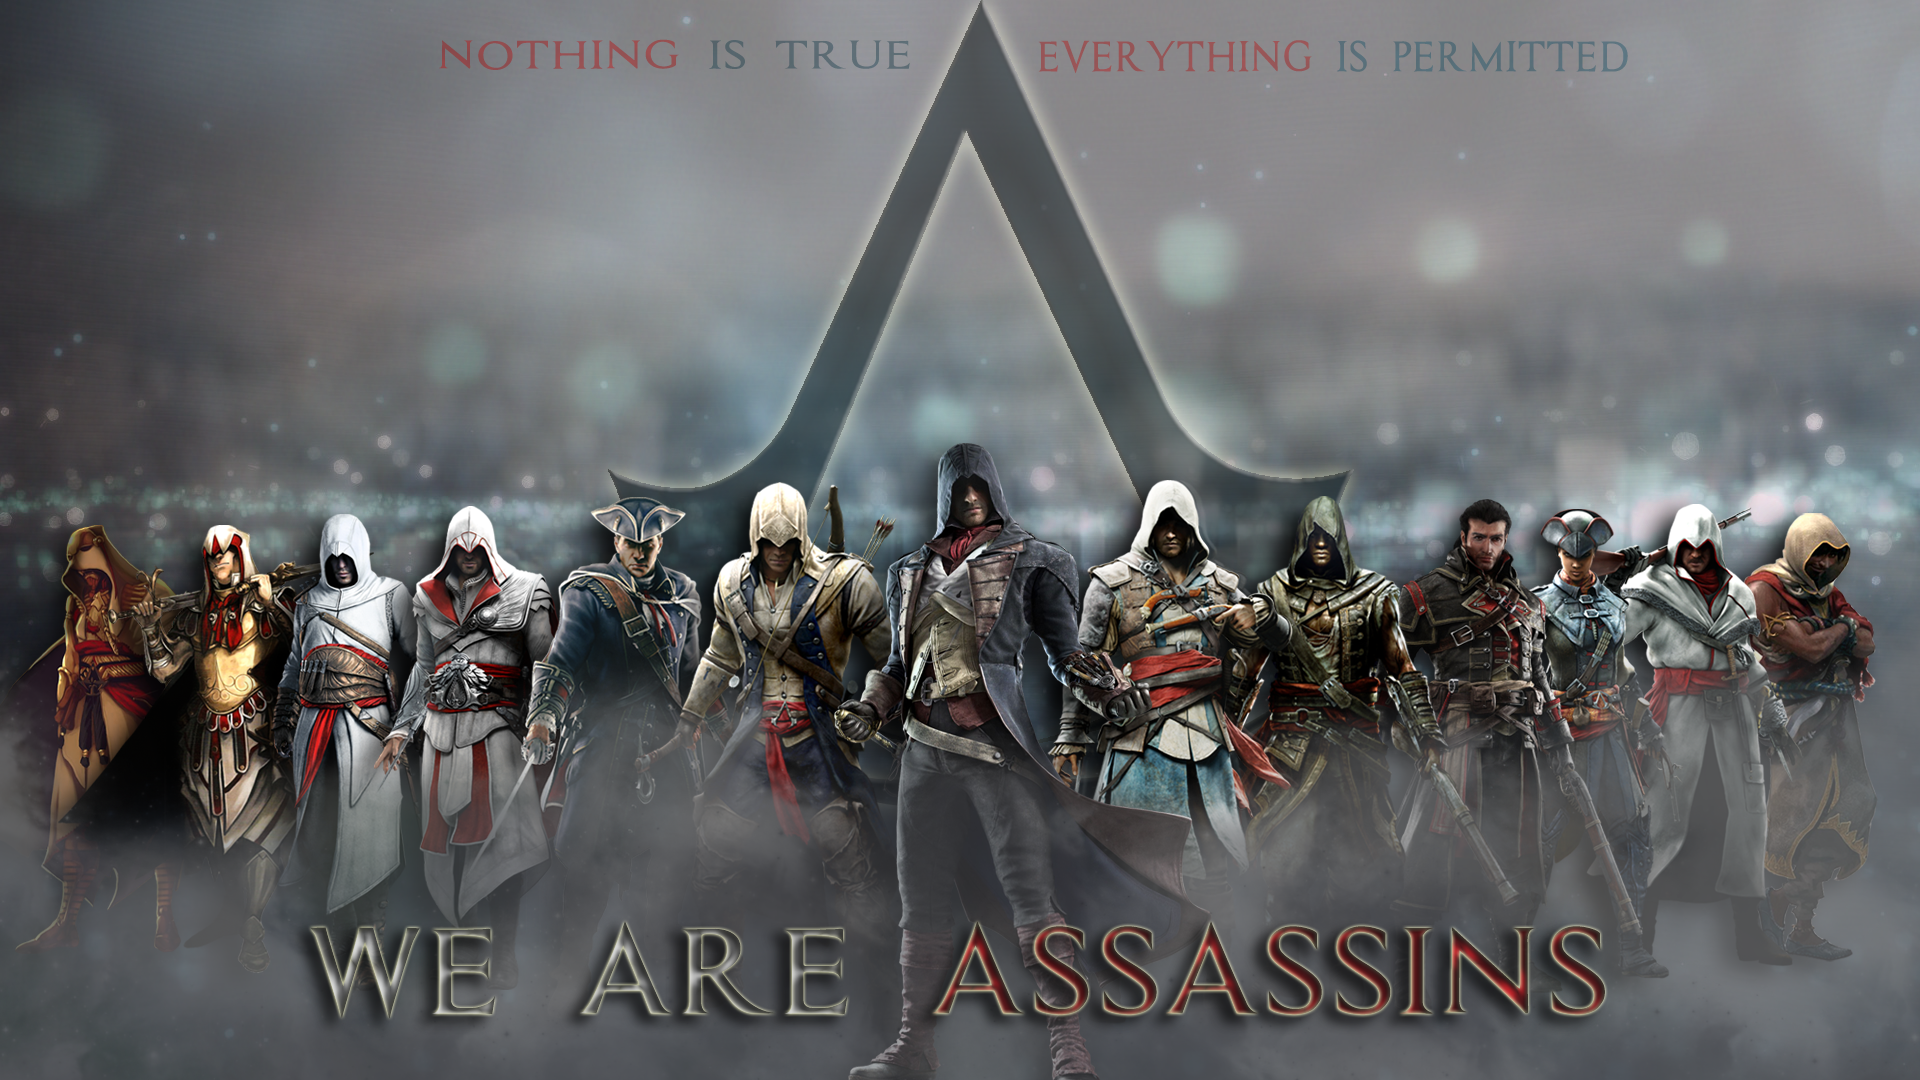 Assassin S Creed Assassins Wallpaper By Trinitynexus384 On Deviantart